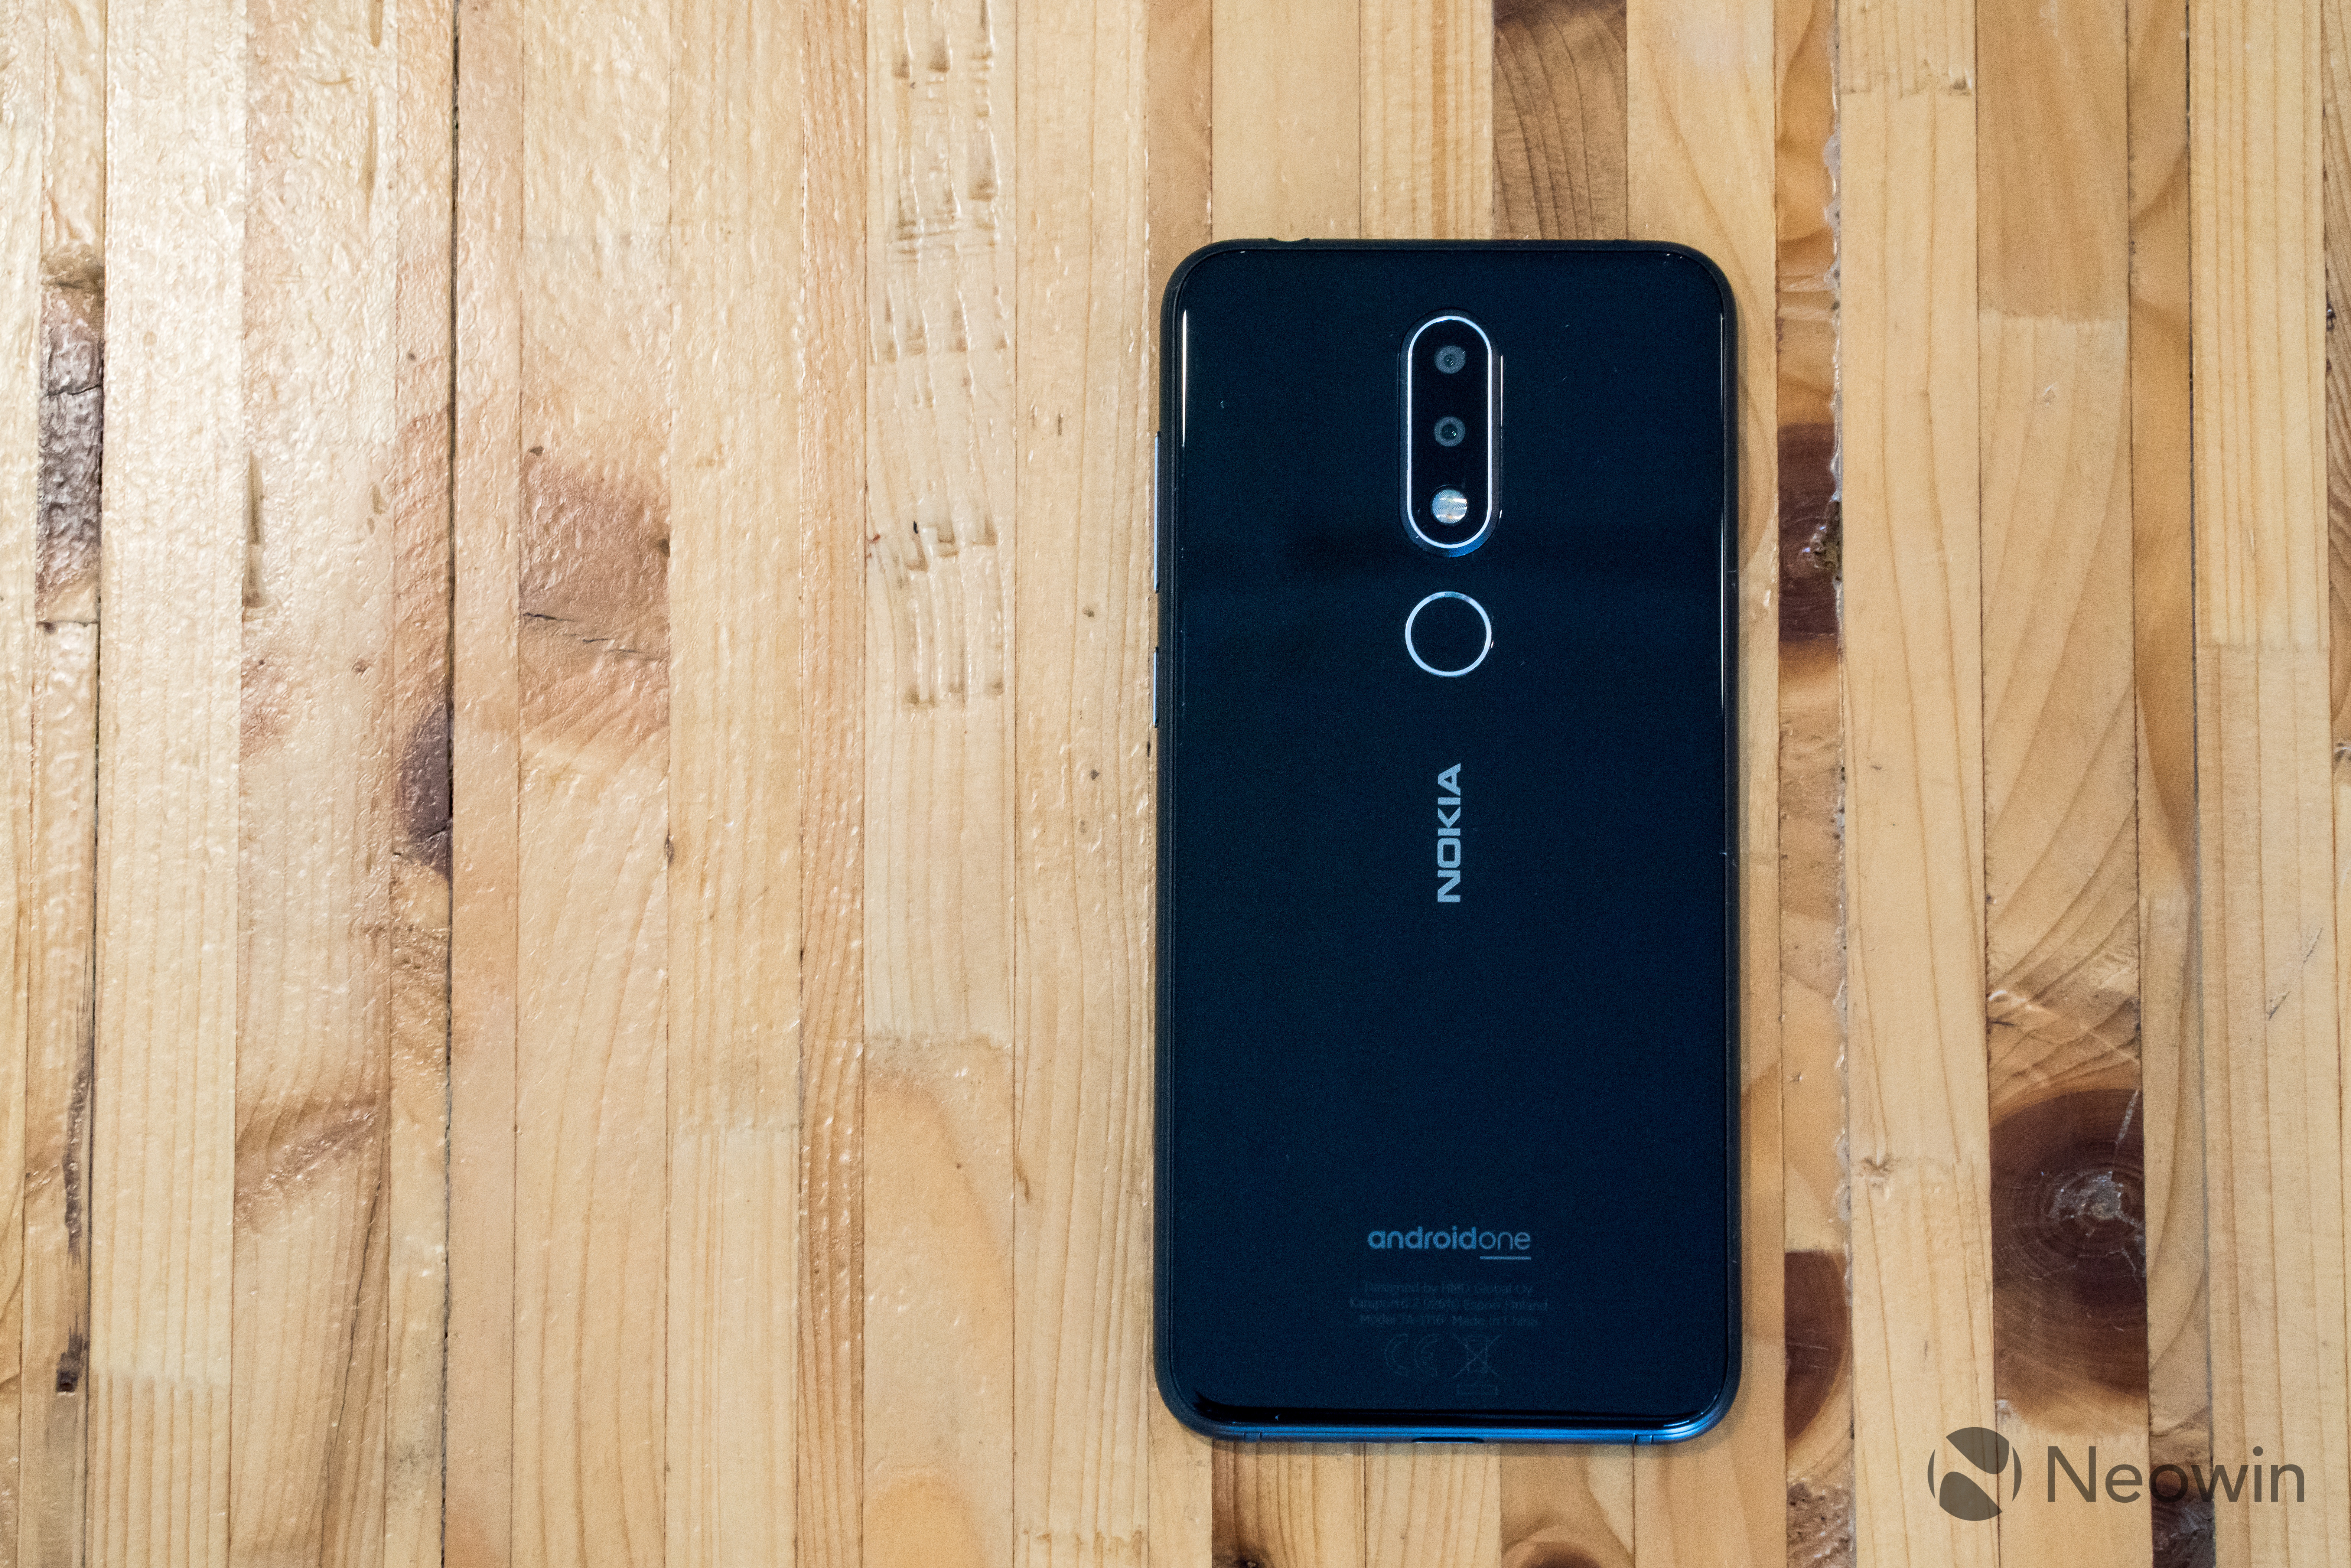 Nokia 6 1 Plus review: HMD's most appealing midranger yet